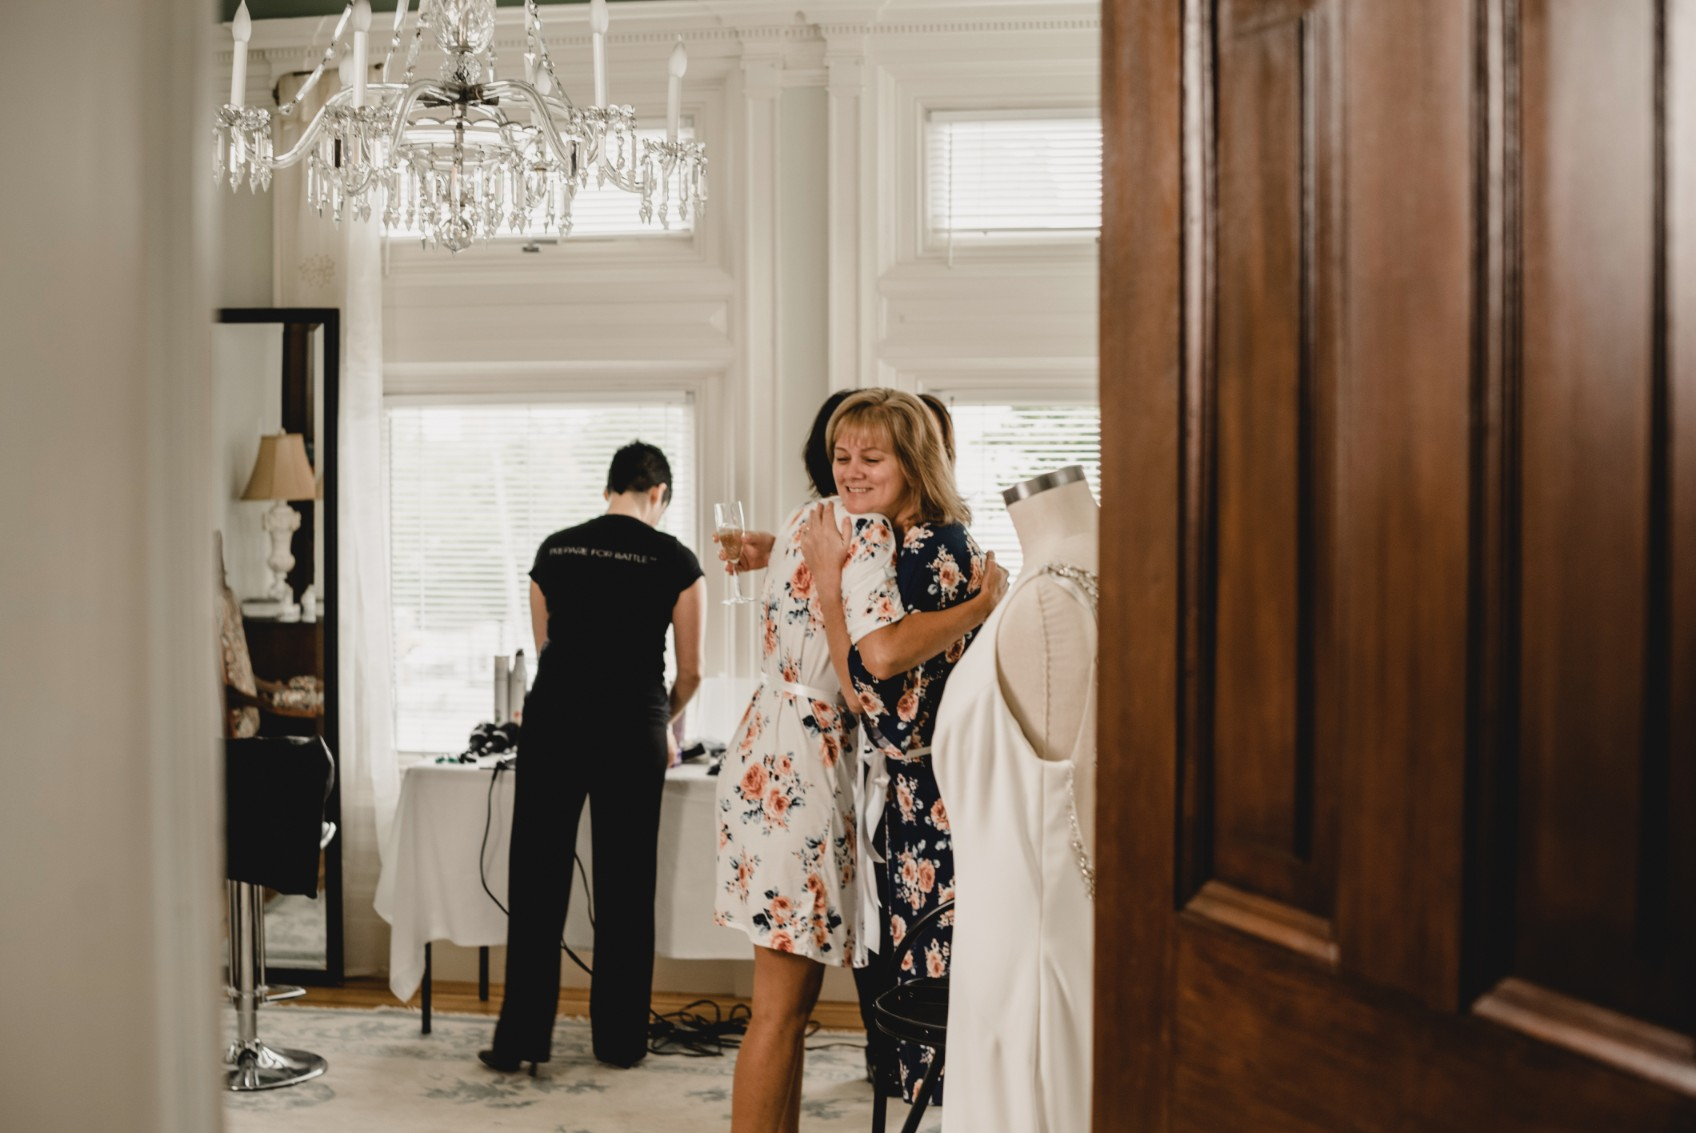 """9:30 AM The bride receives her wedding dress from """"mom""""."""